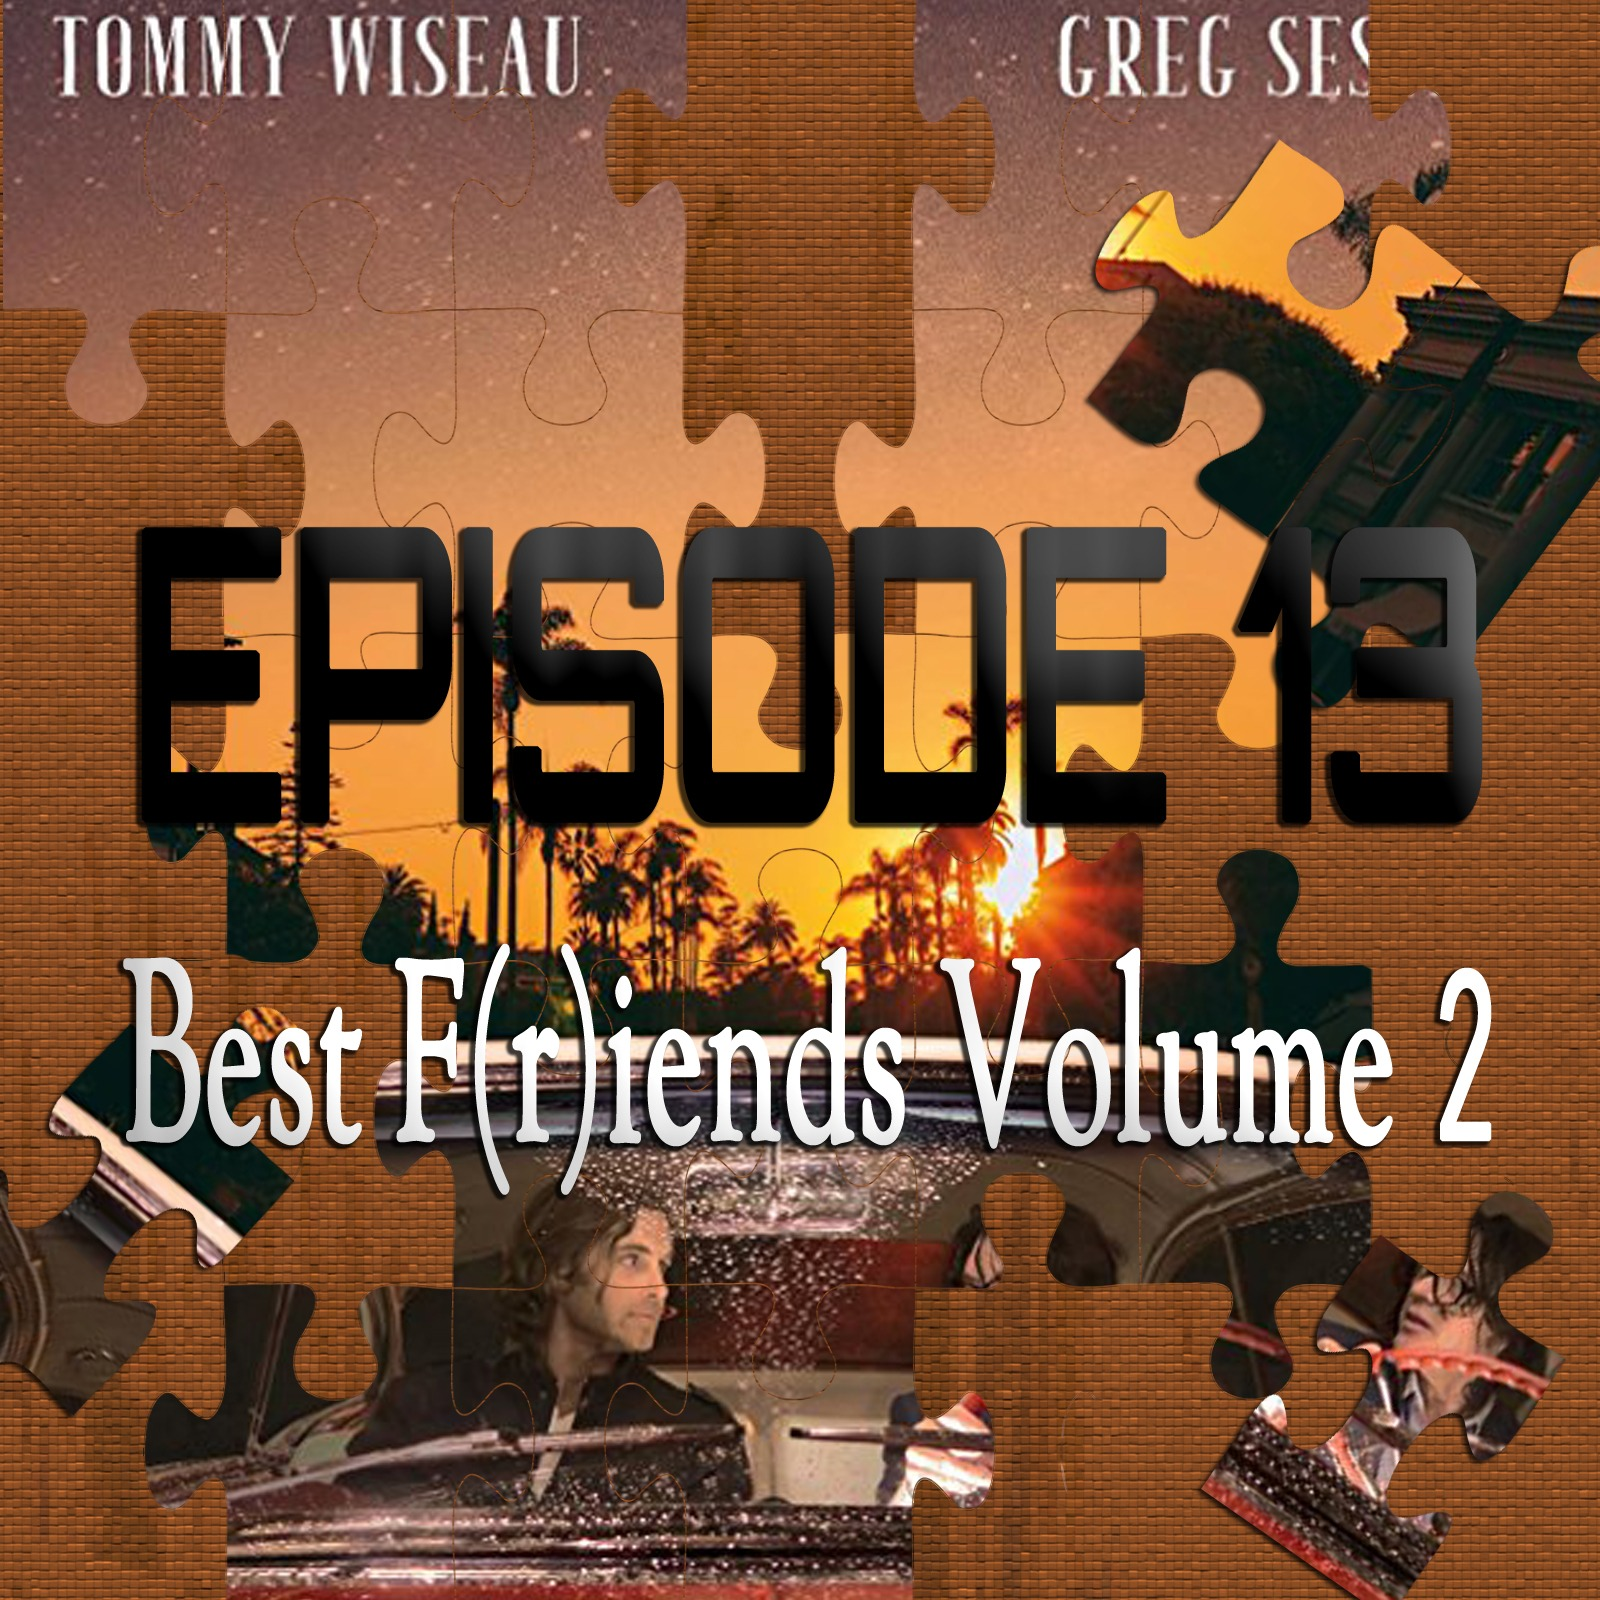 Best F(r)iends Volume 2 (Featuring Ryan Daugherty)